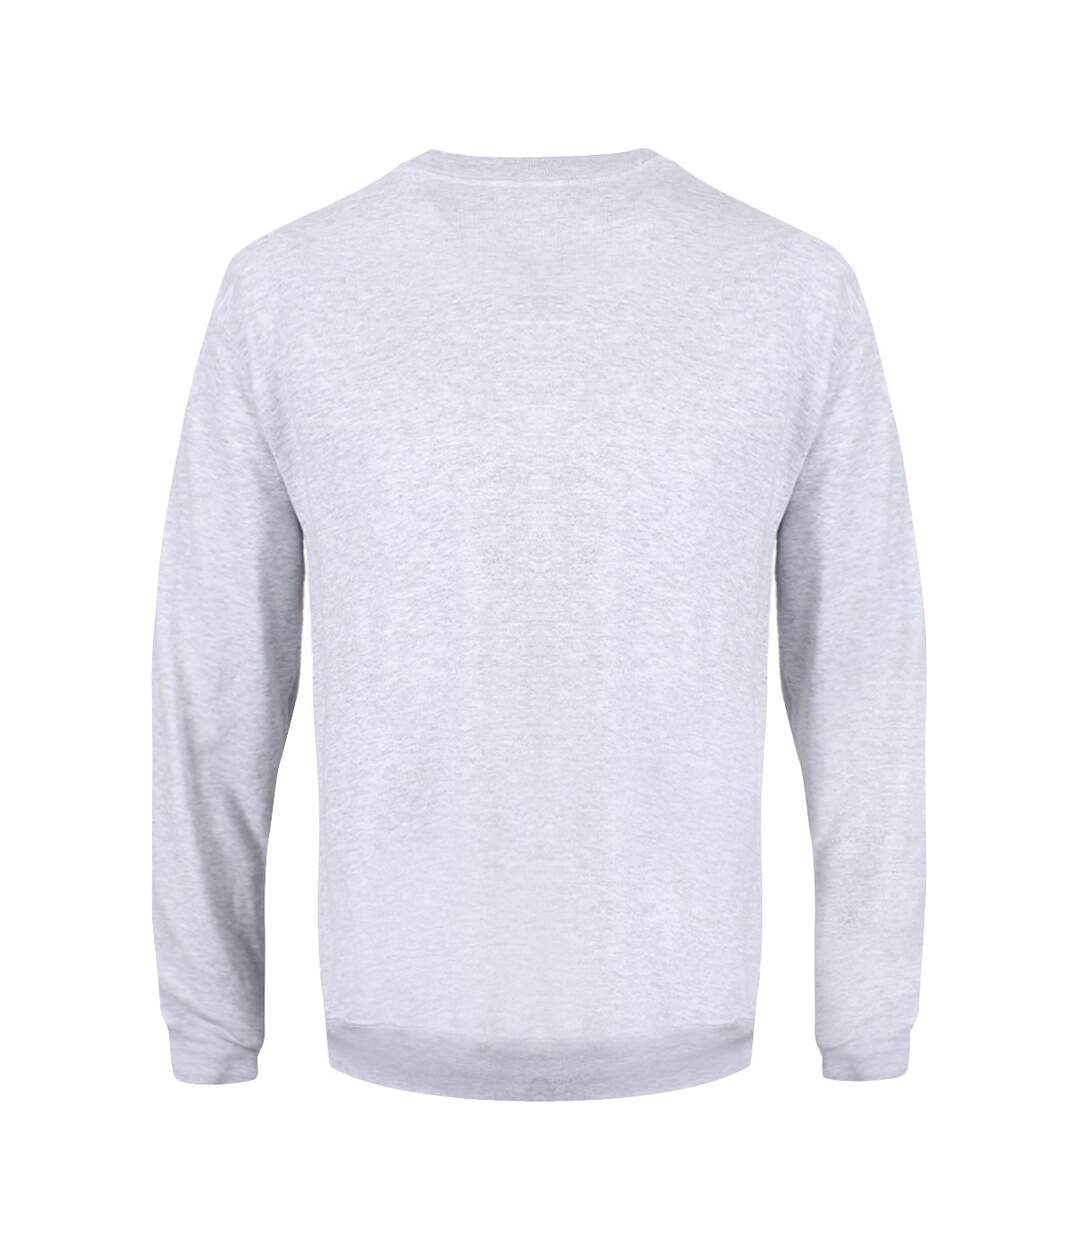 Grindstore Mens All I Want For Christmas Is Ru Christmas Jumper (Grey) - UTGR2966